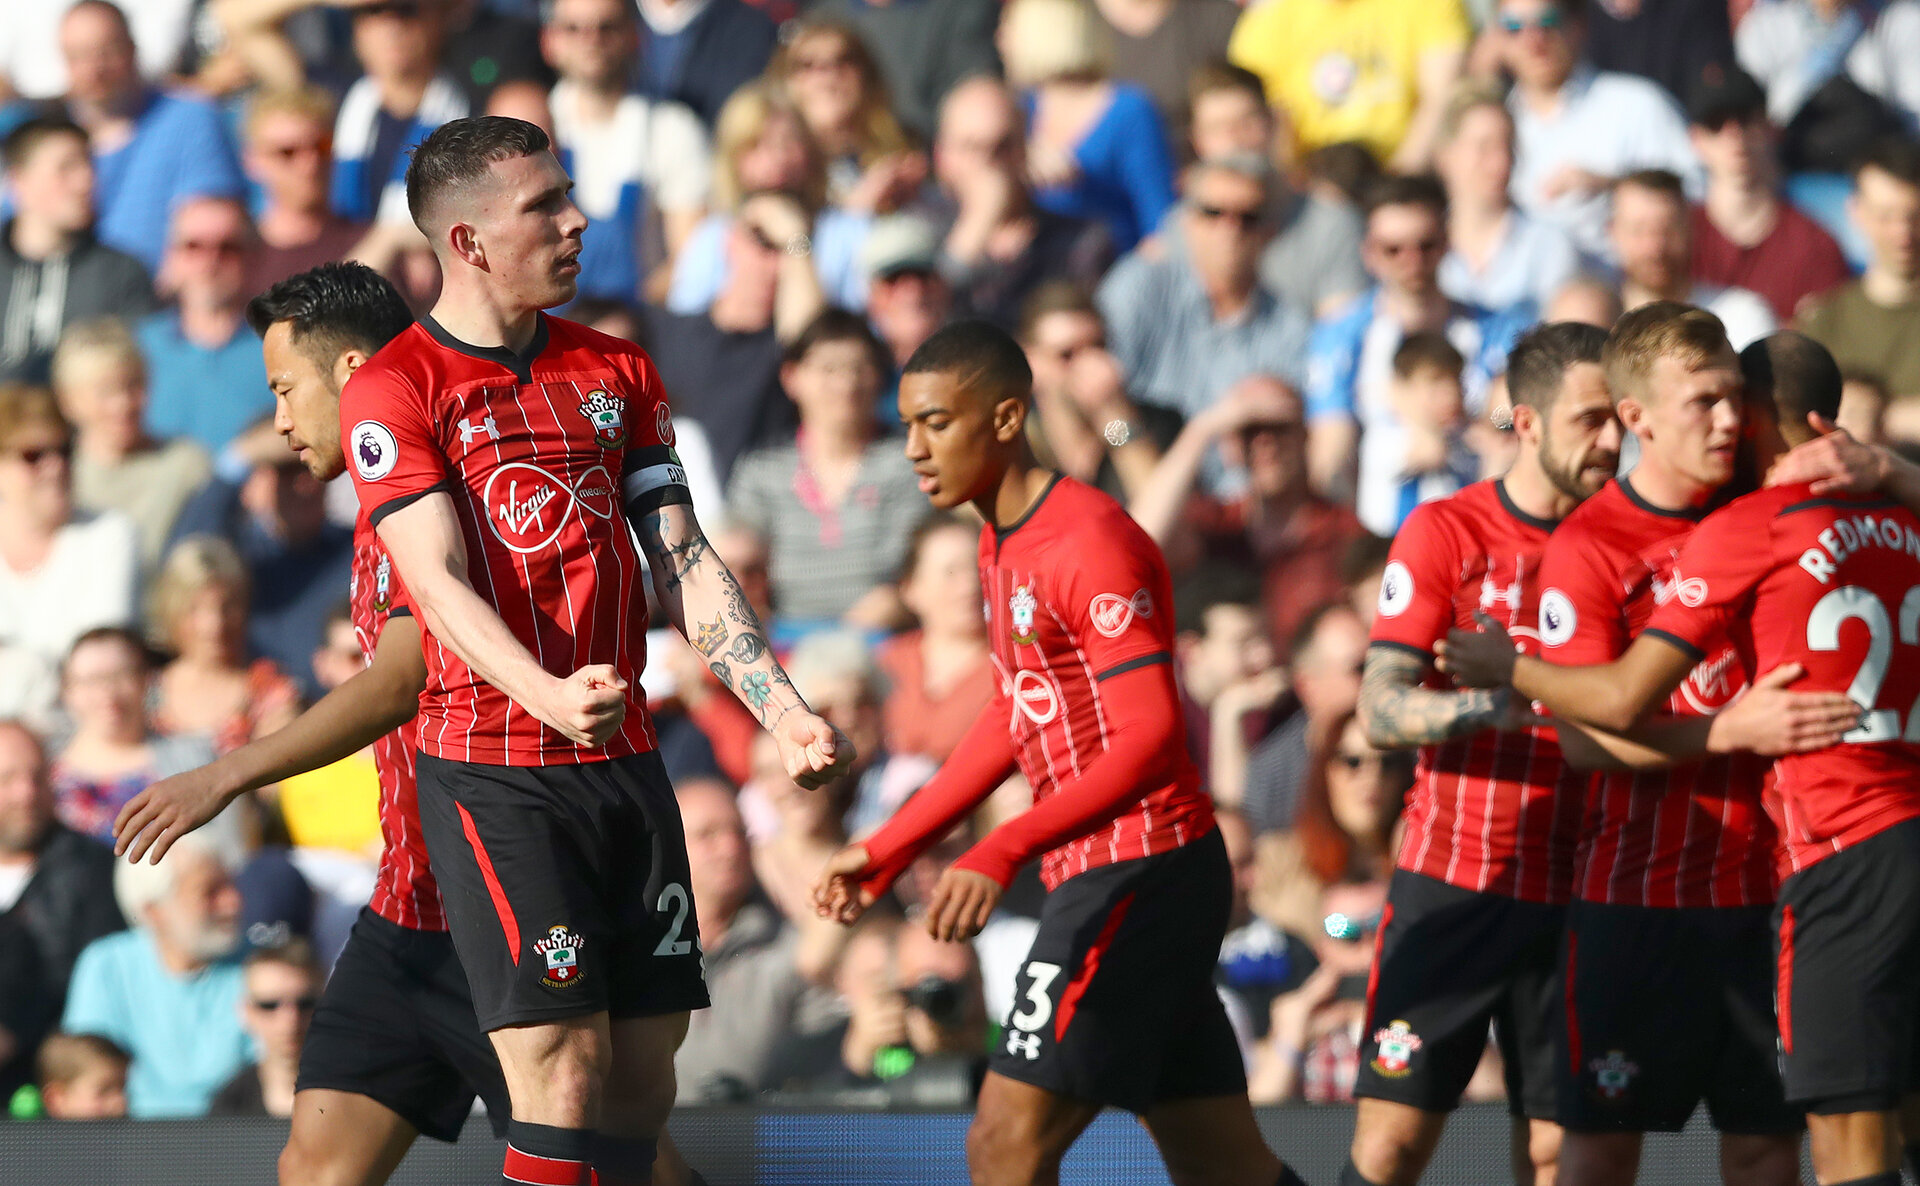 BRIGHTON, ENGLAND - MARCH 30: Pierre-Emile Hojbjerg of Southampton celebrates with his team mates after opening the scoring during the Premier League match between Brighton & Hove Albion and Southampton FC at American Express Community Stadium on March 30, 2019 in Brighton, United Kingdom. (Photo by Matt Watson/Southampton FC via Getty Images)